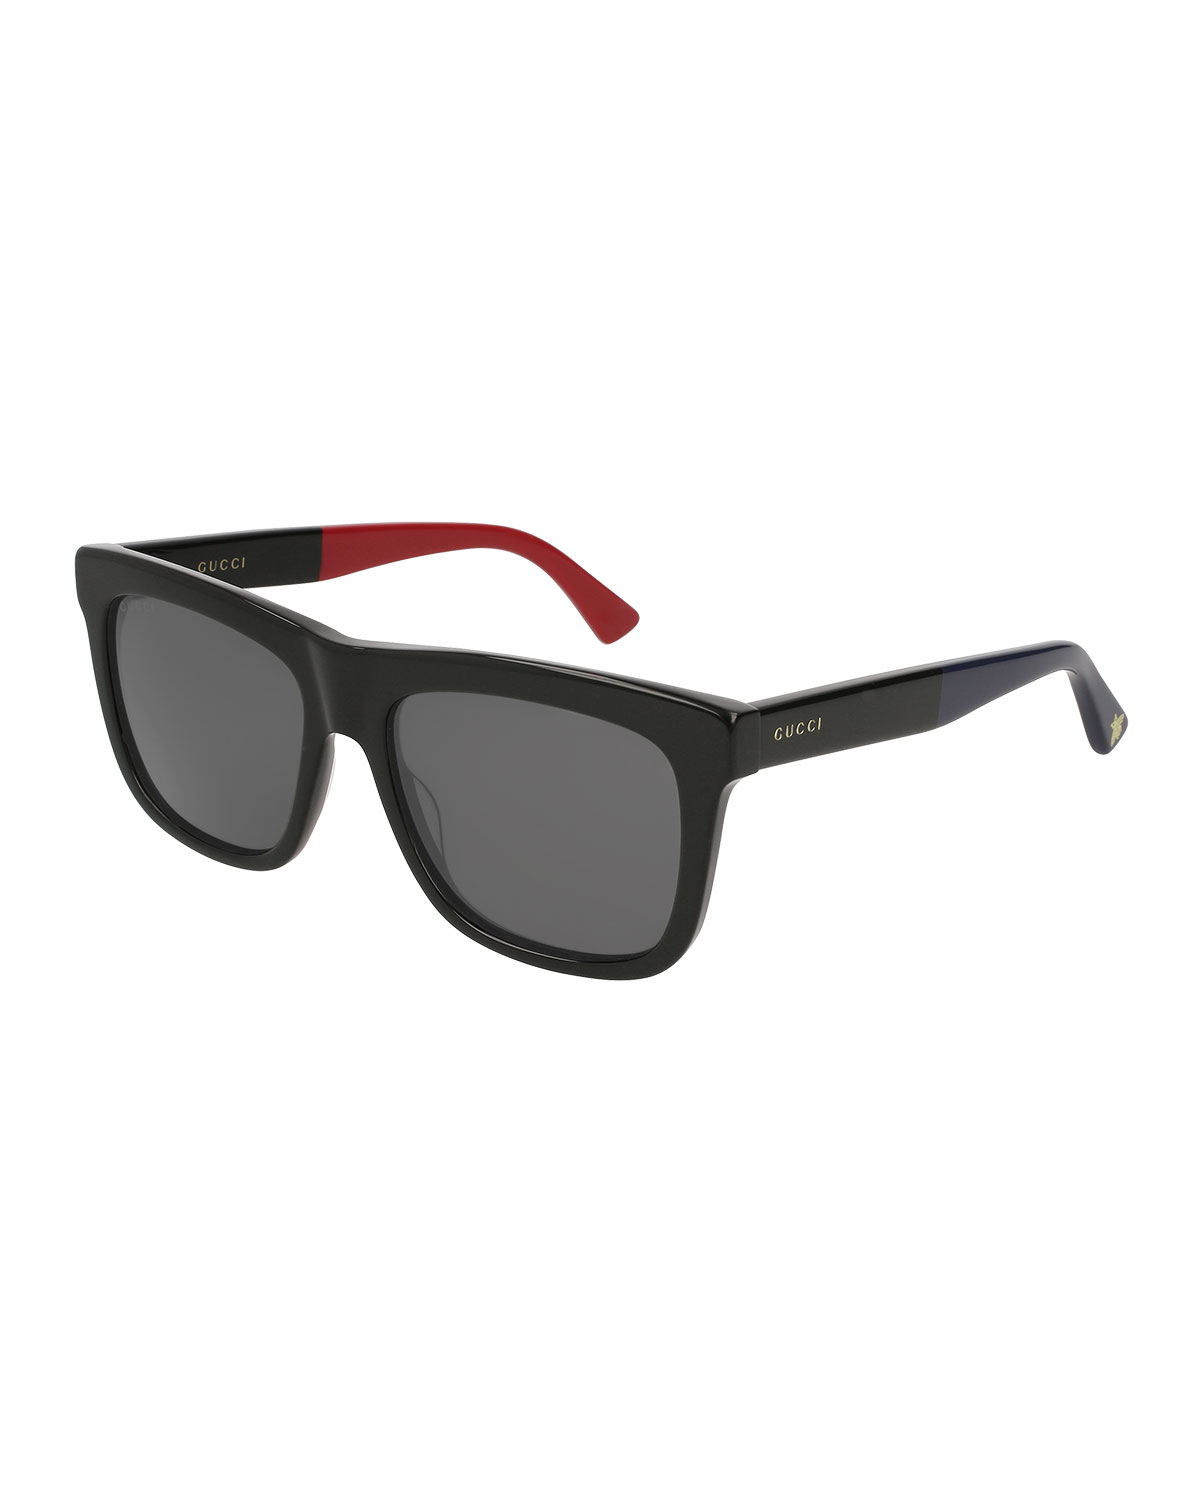 365e657e3b Gucci Rectangular Flat-Top Acetate Sunglasses